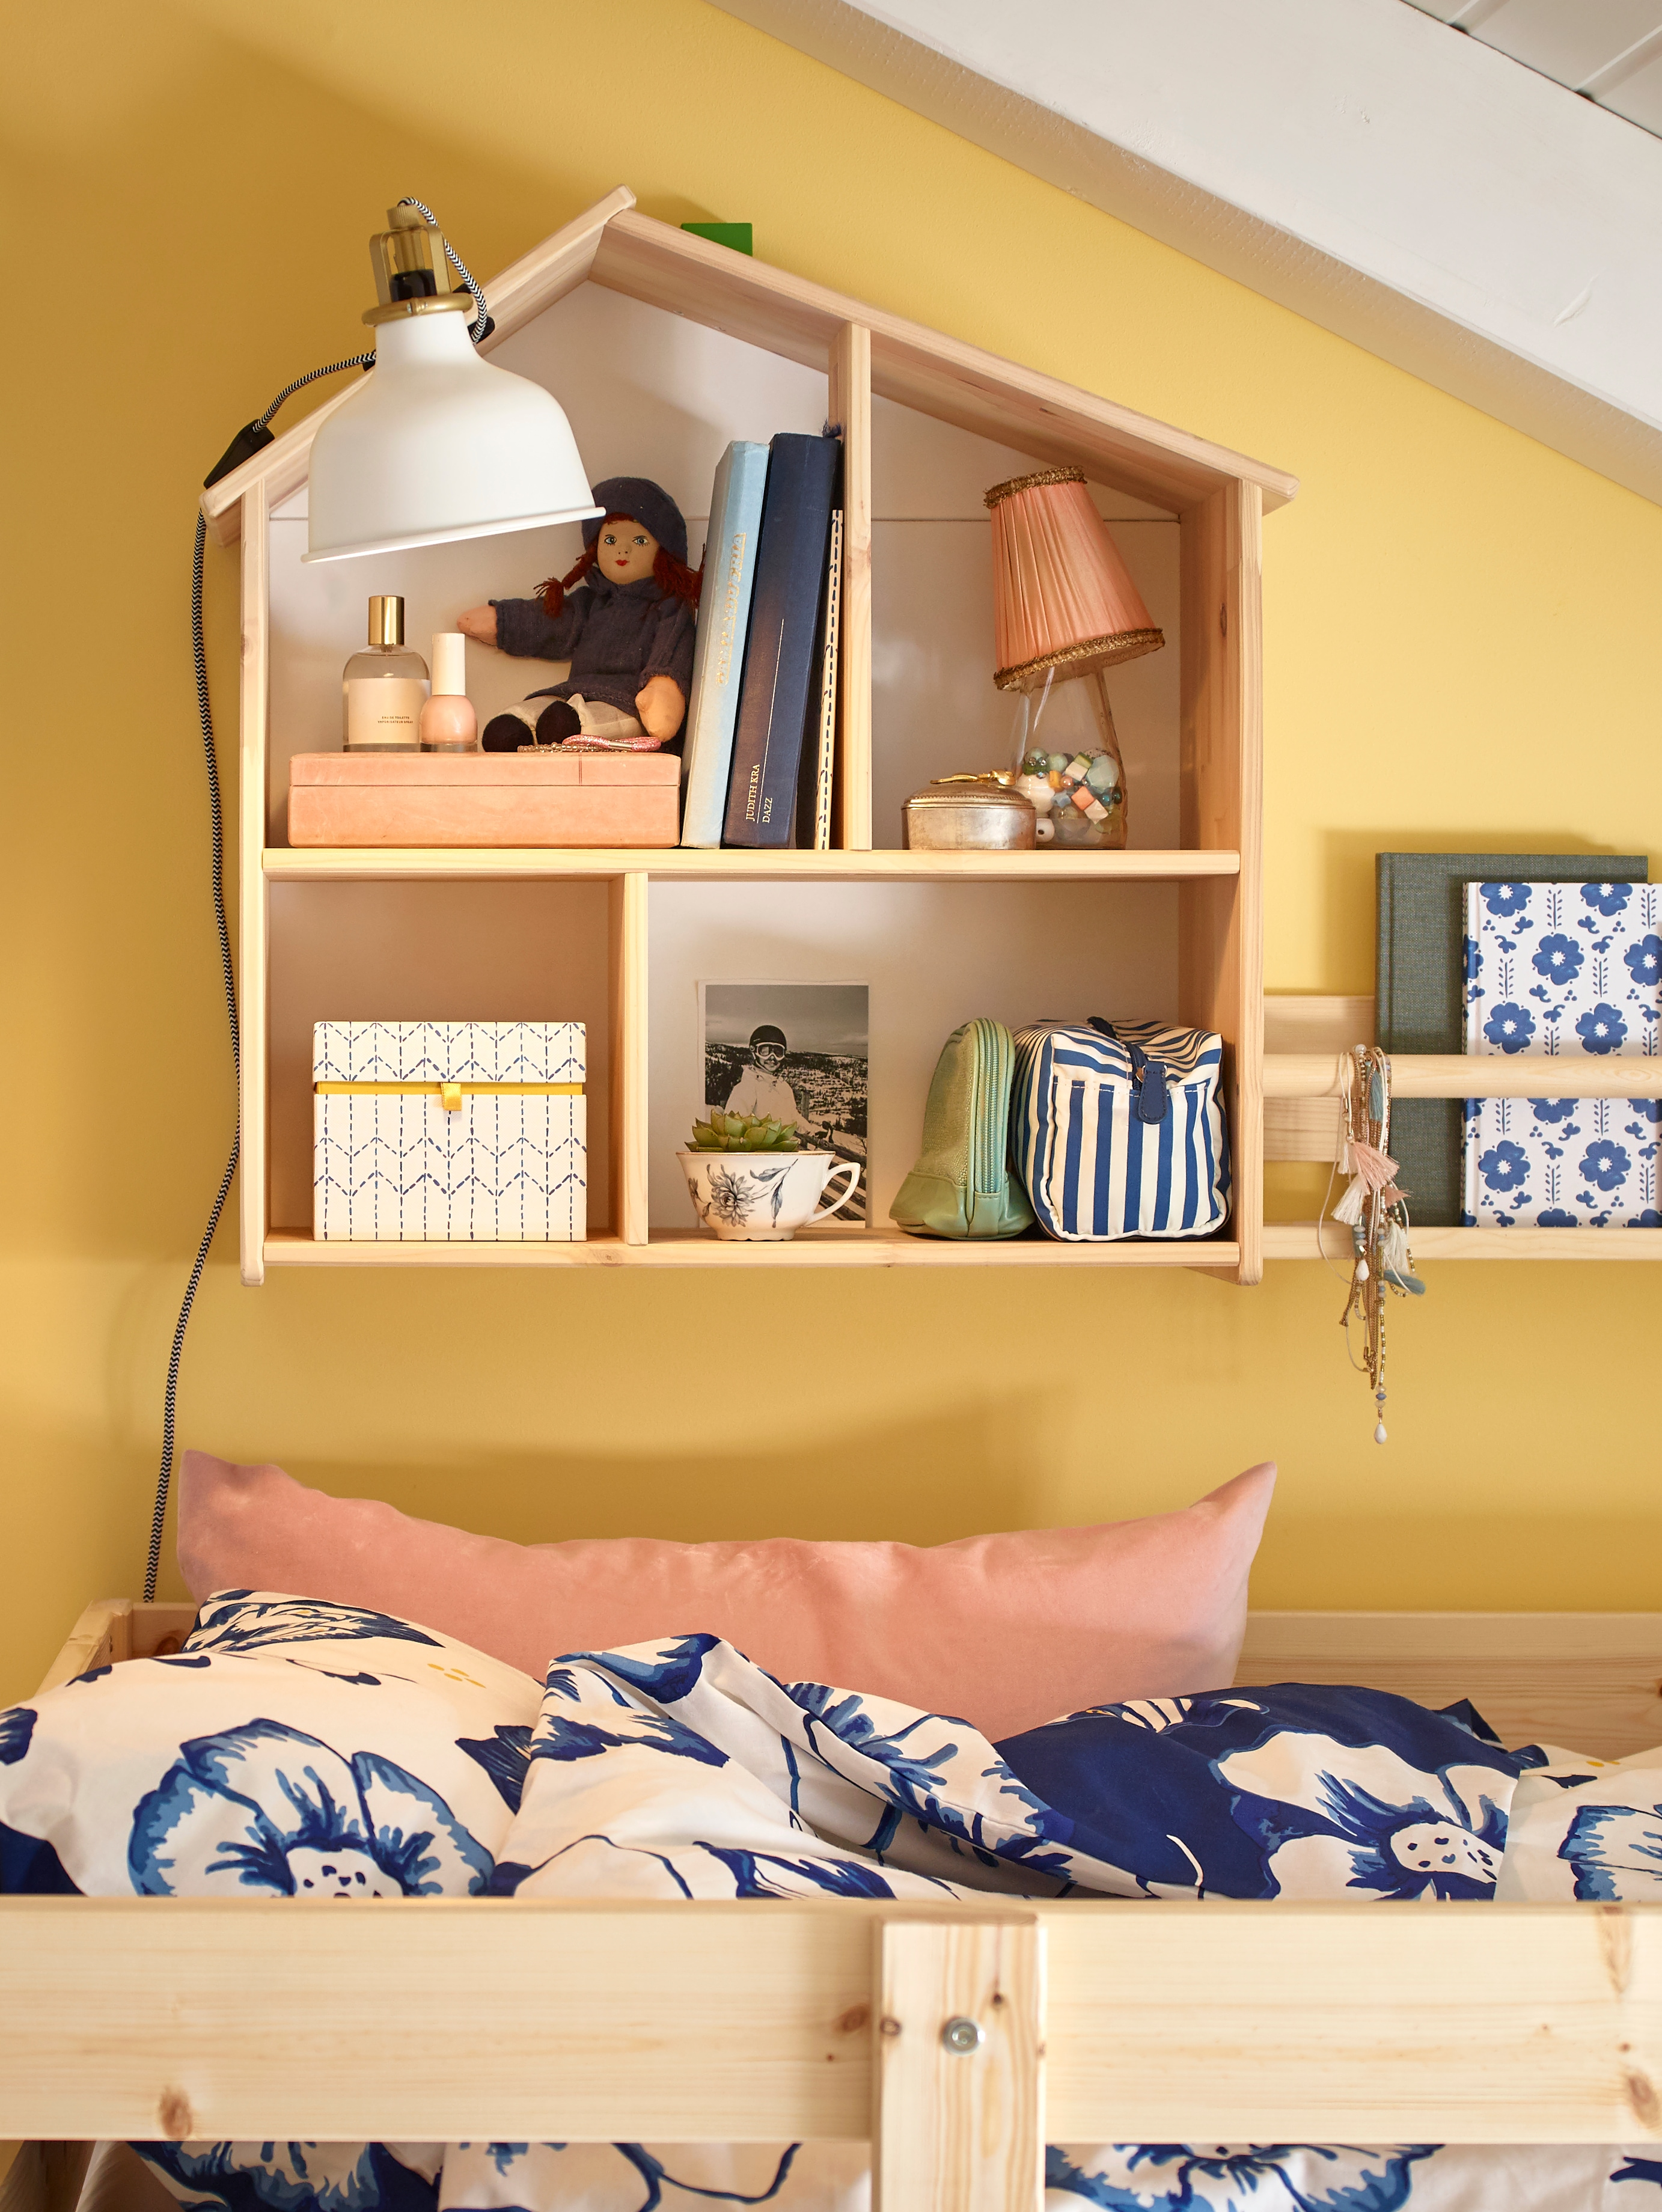 A pine FLISAT doll's house/wall shelf holds various toys and children's items on a wall, above a bunk bed with bed linen.